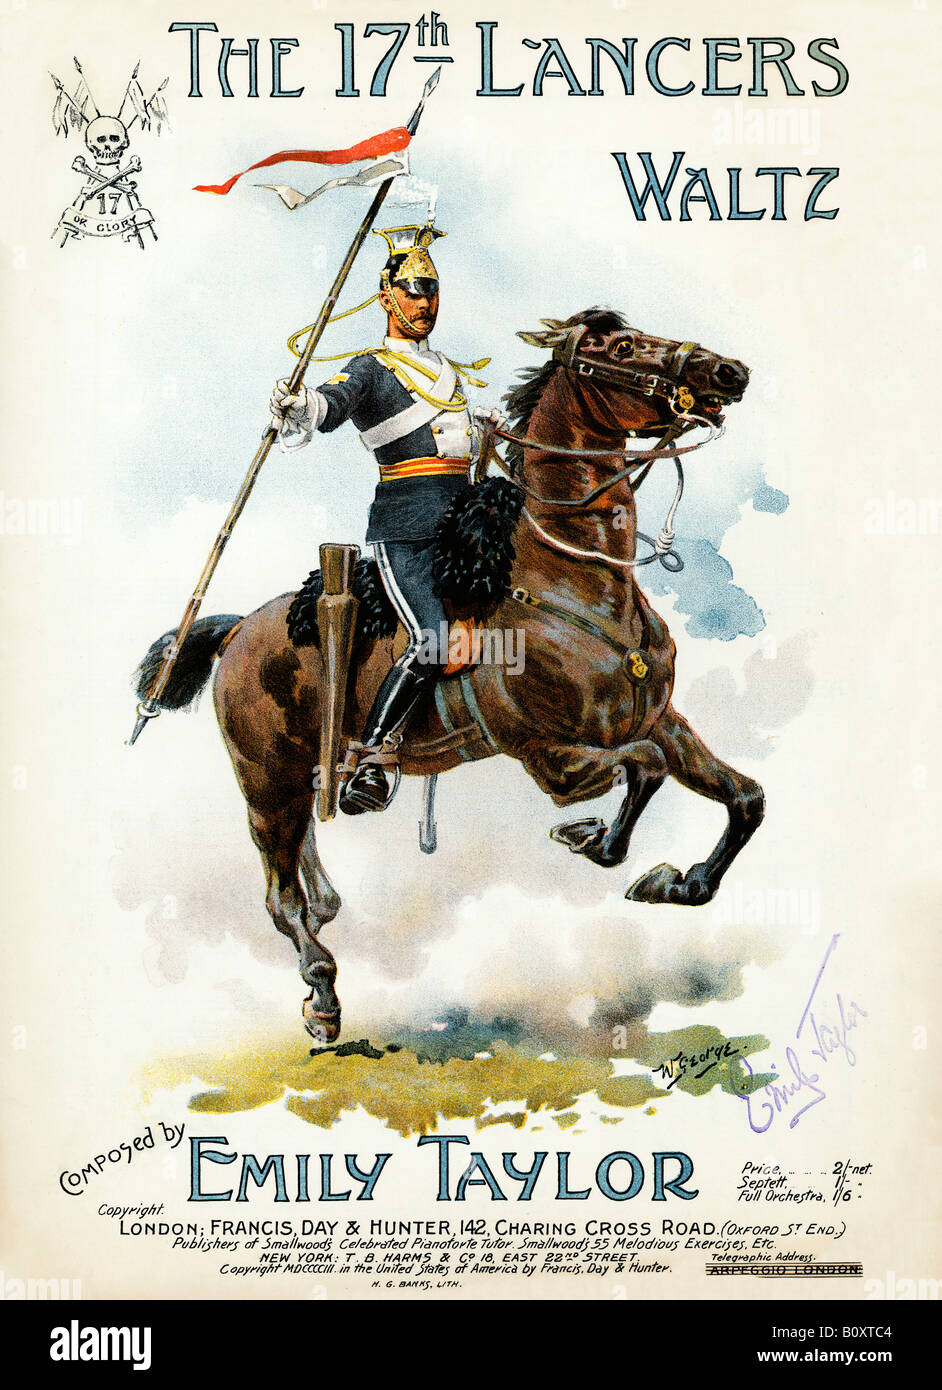 17th Lancers Waltz Edwardian music to celebrate the cavalry regiment that took part in the Charge of the Light Brigade - Stock Image